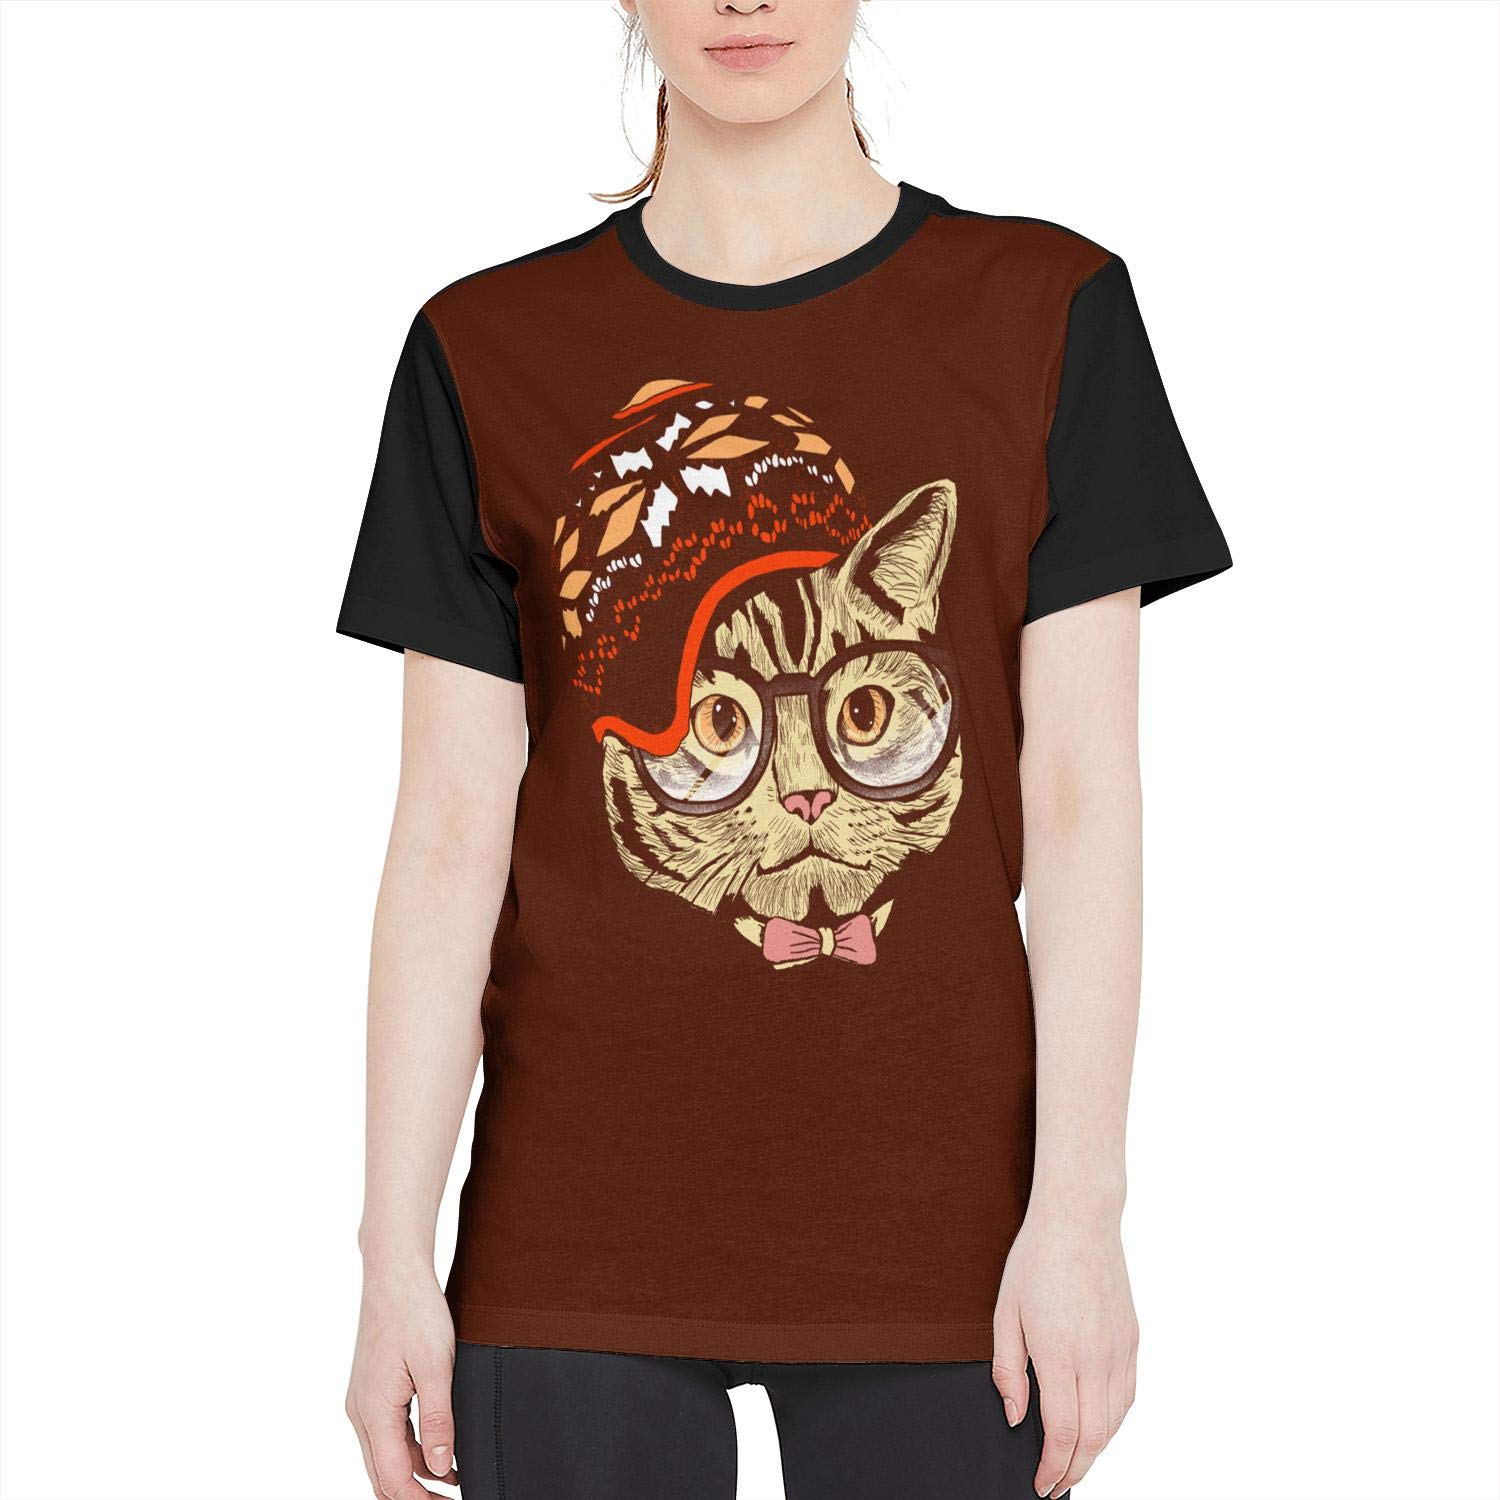 Shopping Females Full Print T-Shirt Hipster Cat with Hat Short Tees New Classic